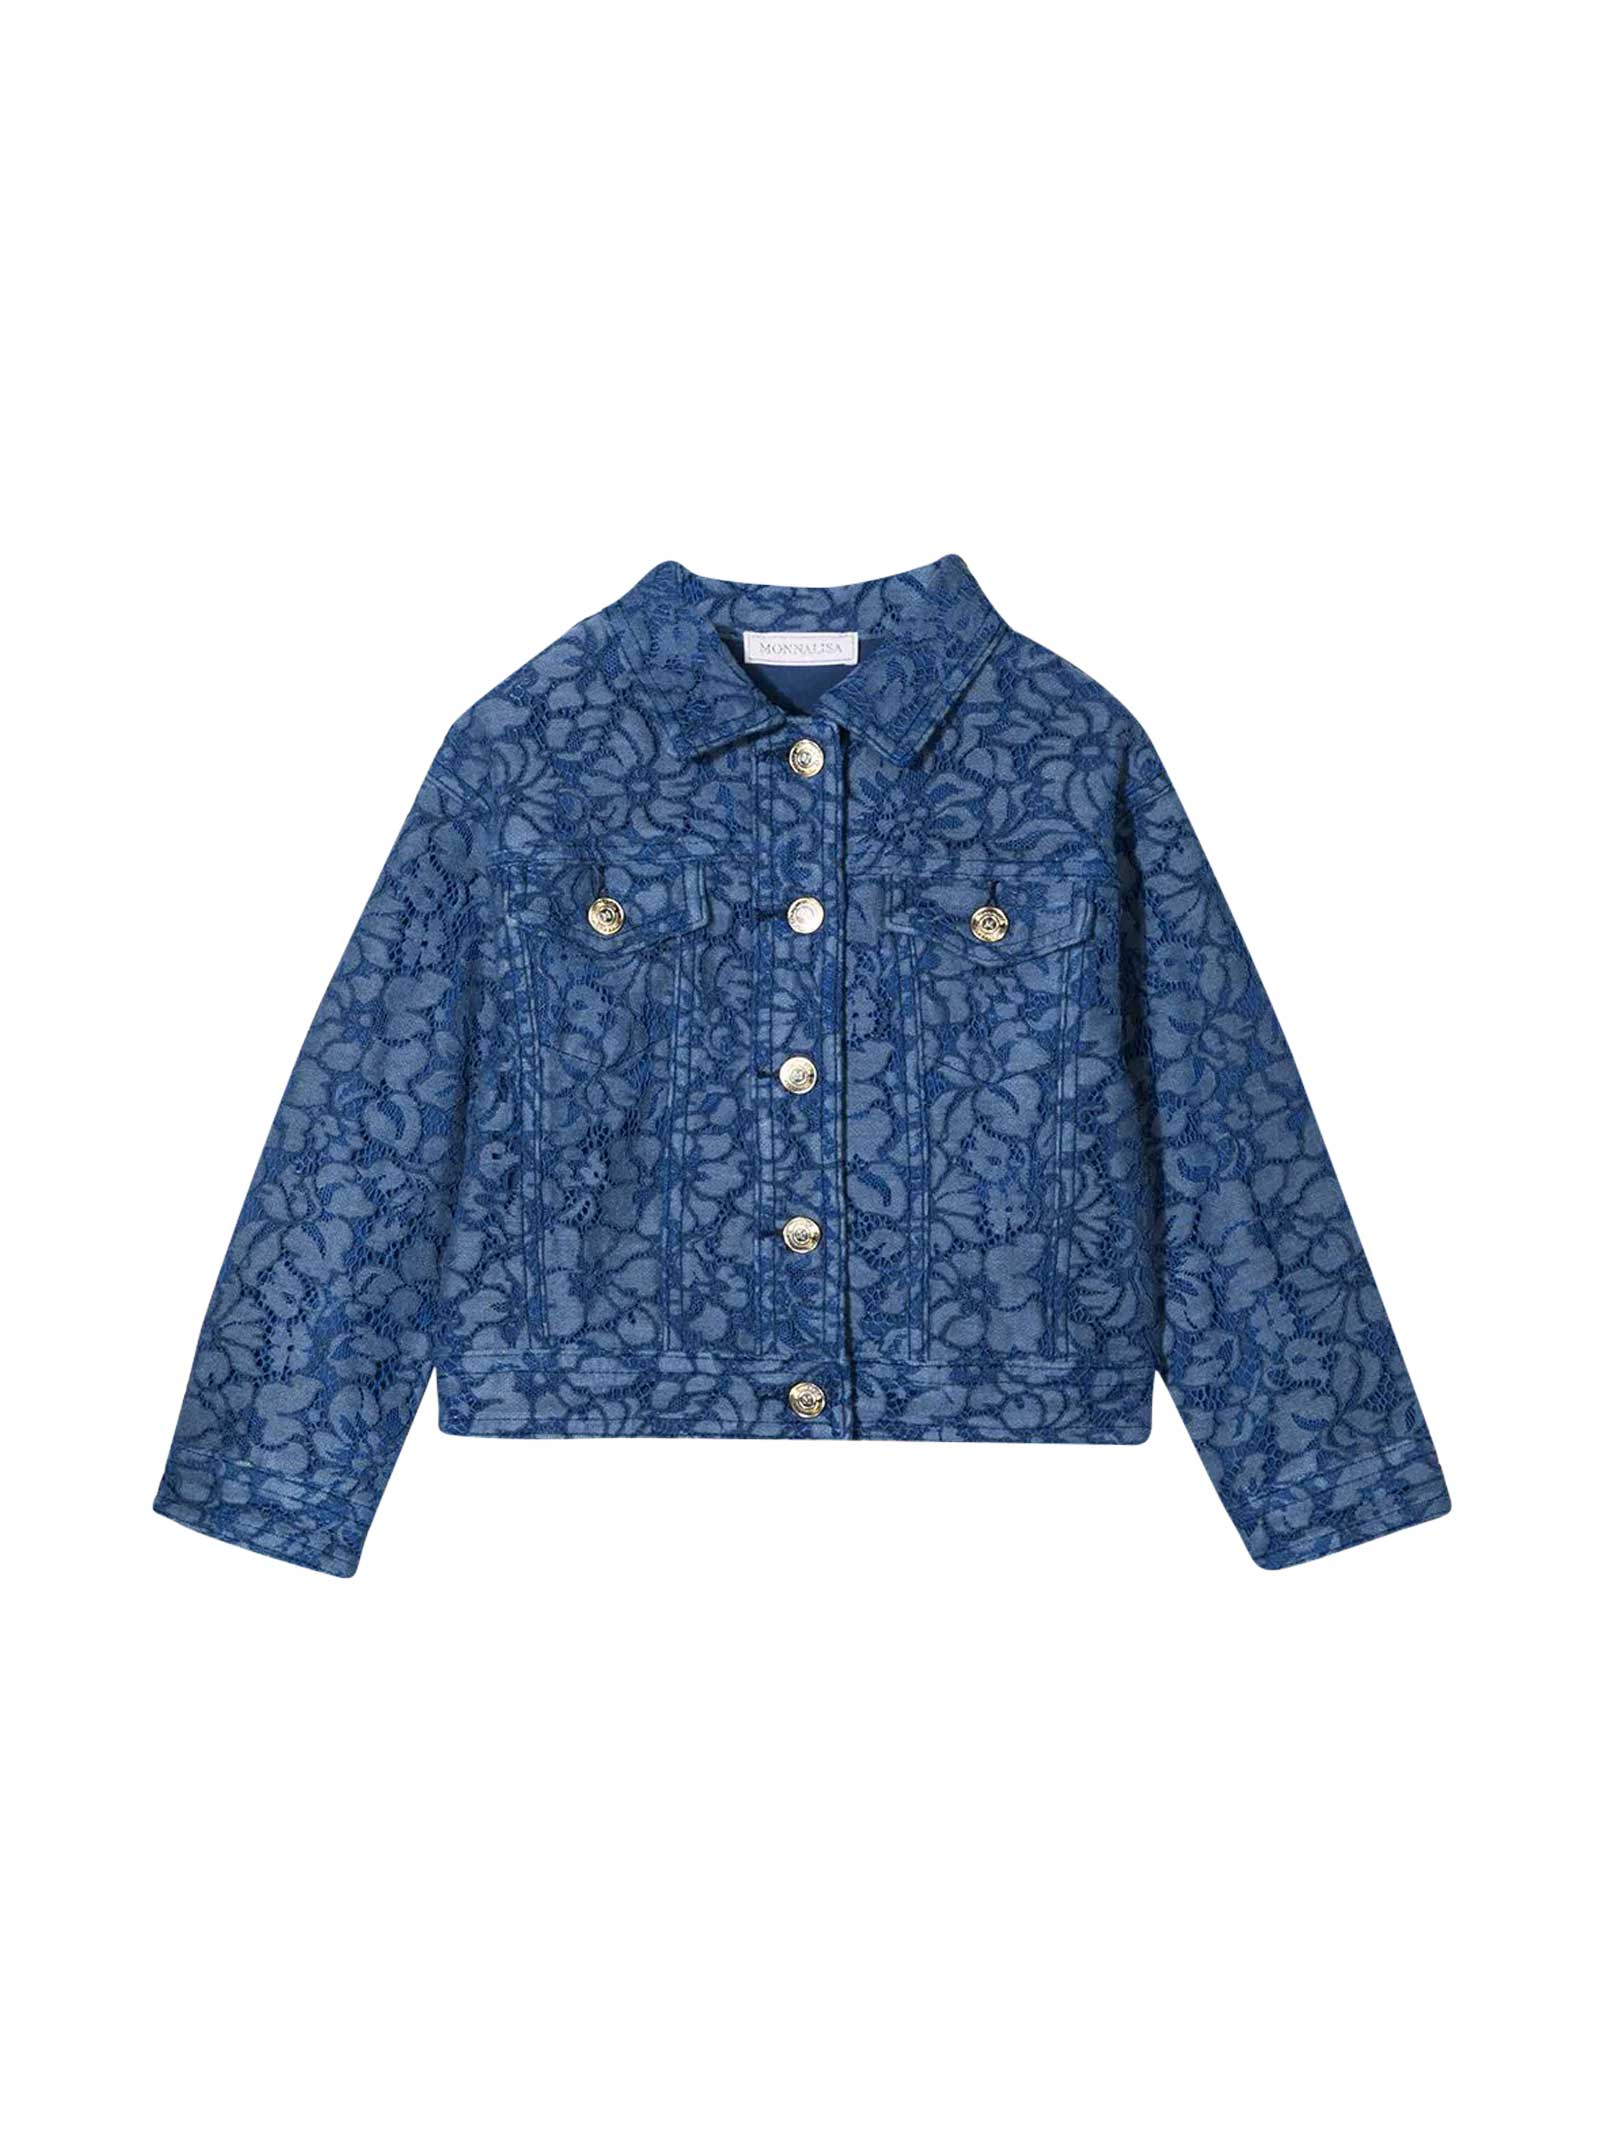 Monnalisa DENIM JACKET